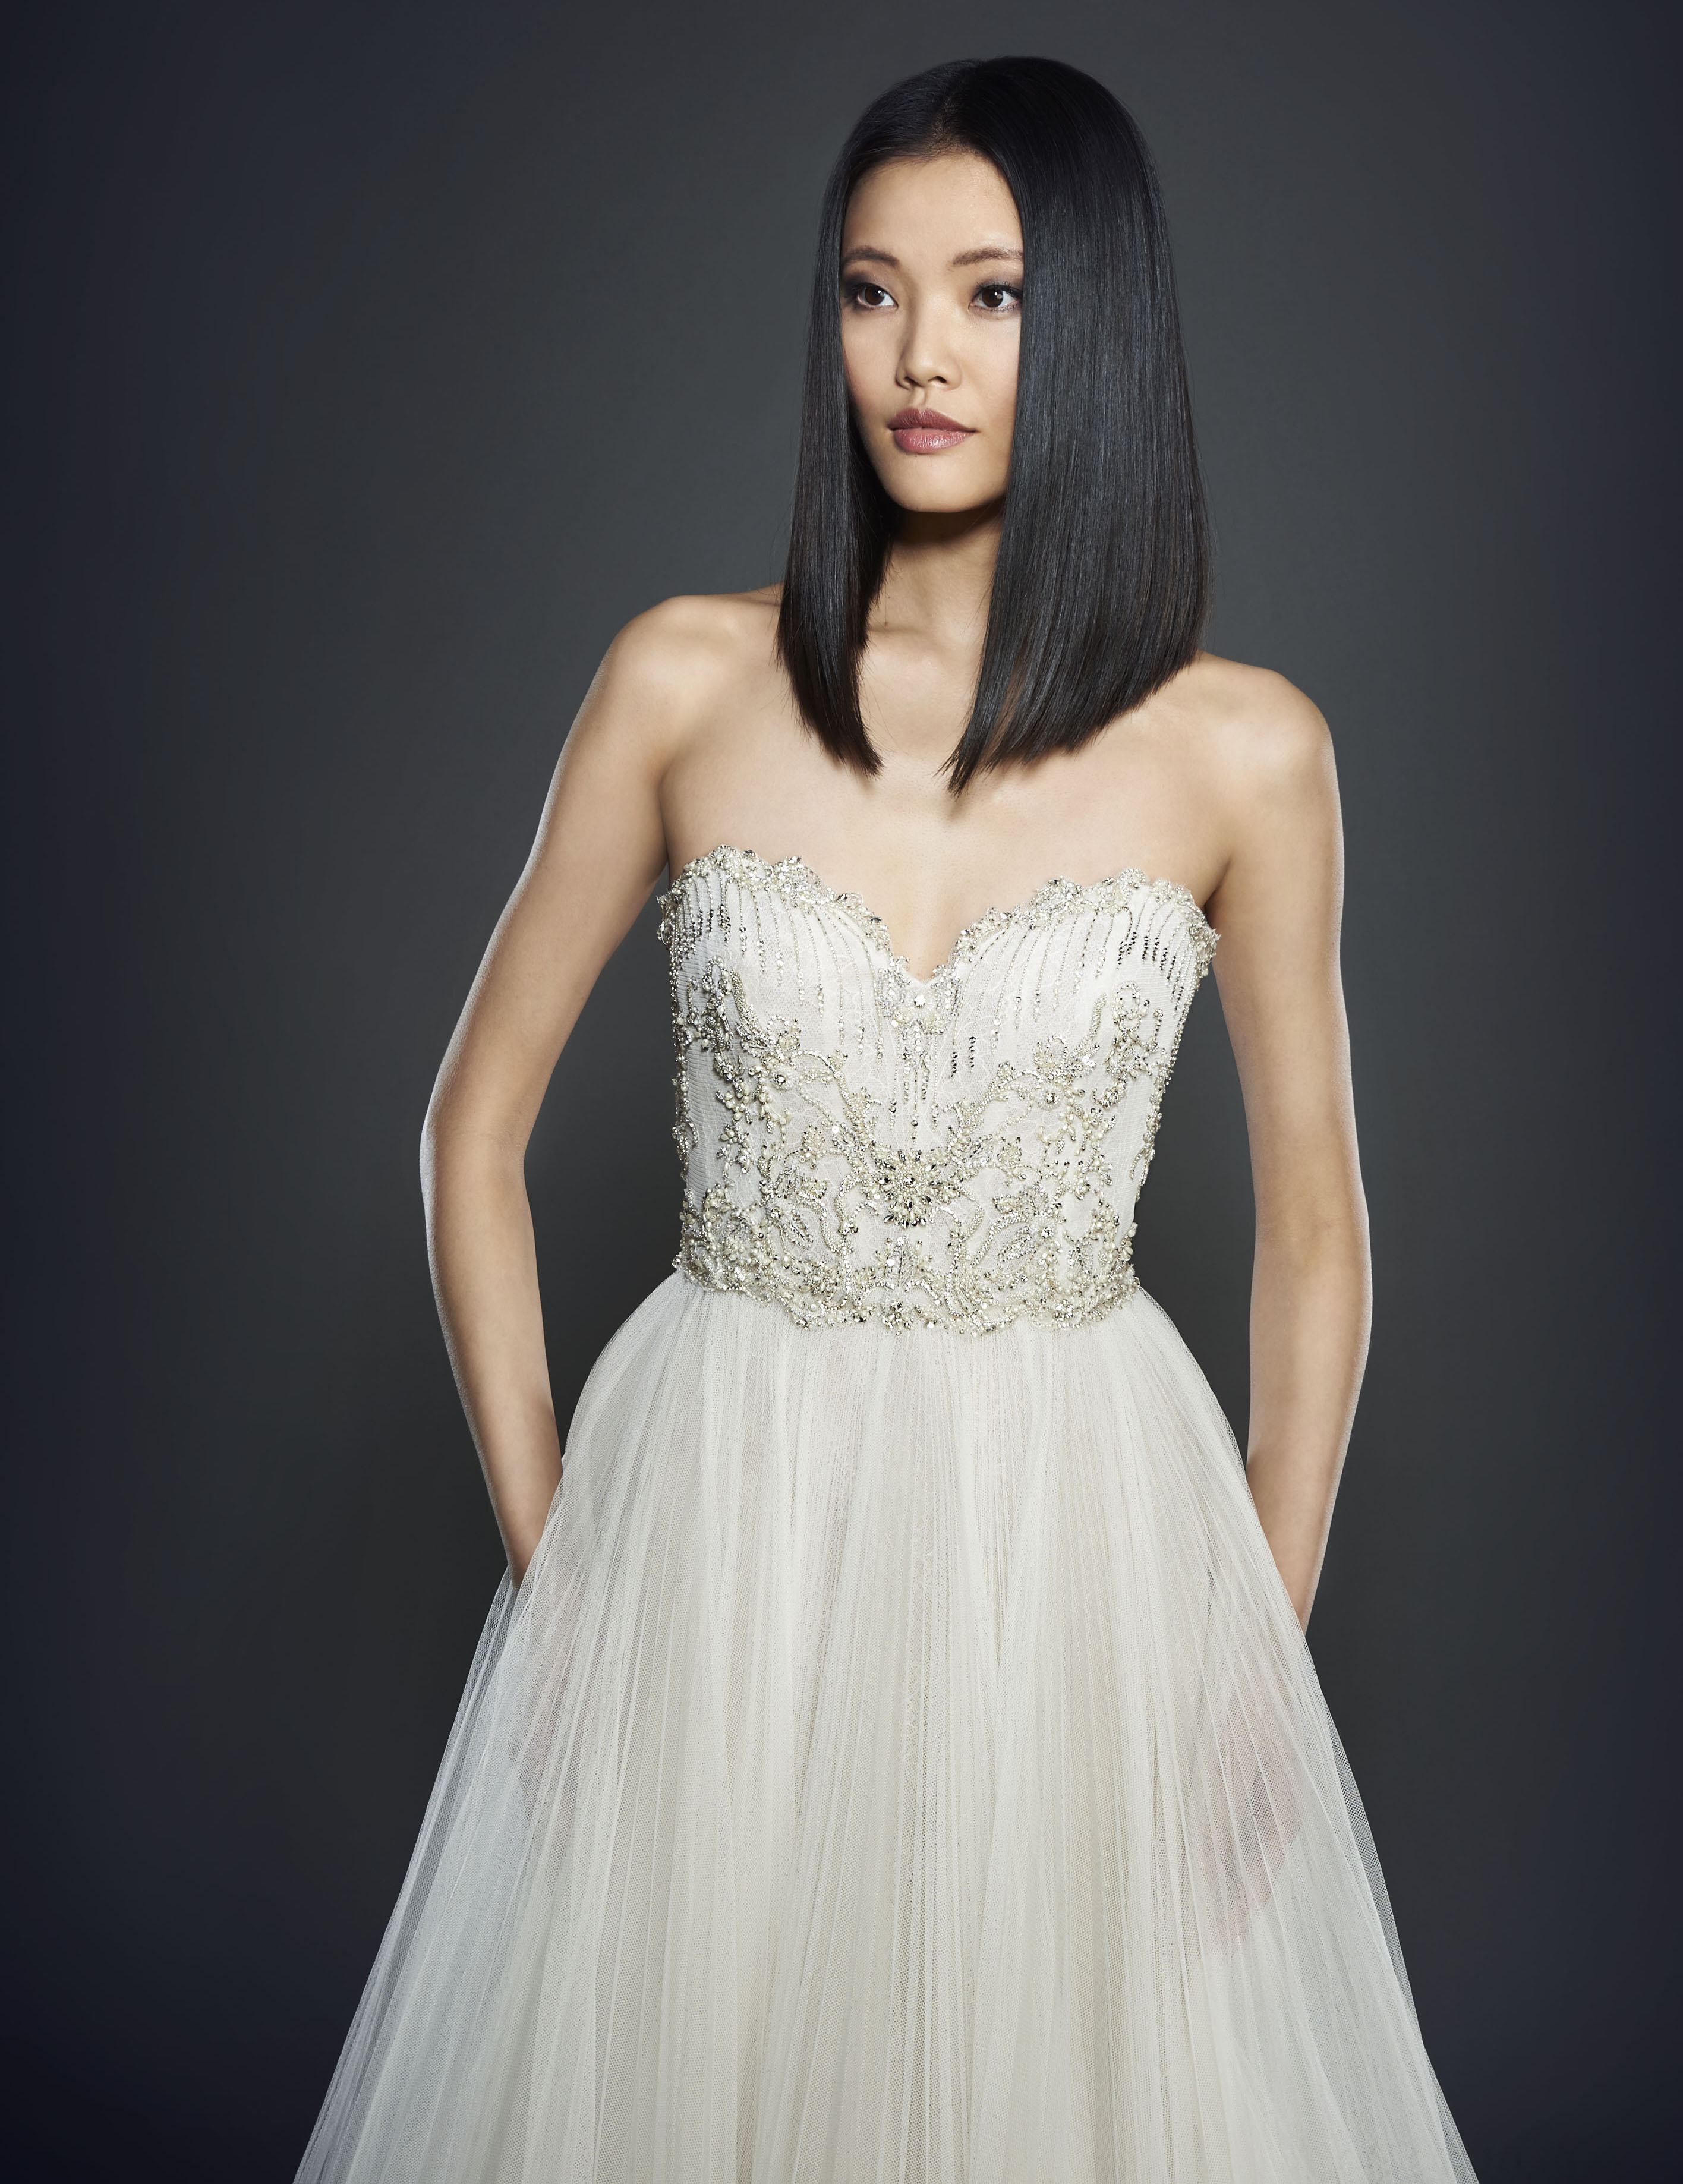 Bridal Gowns and Wedding Dresses by JLM Couture - Style 3706